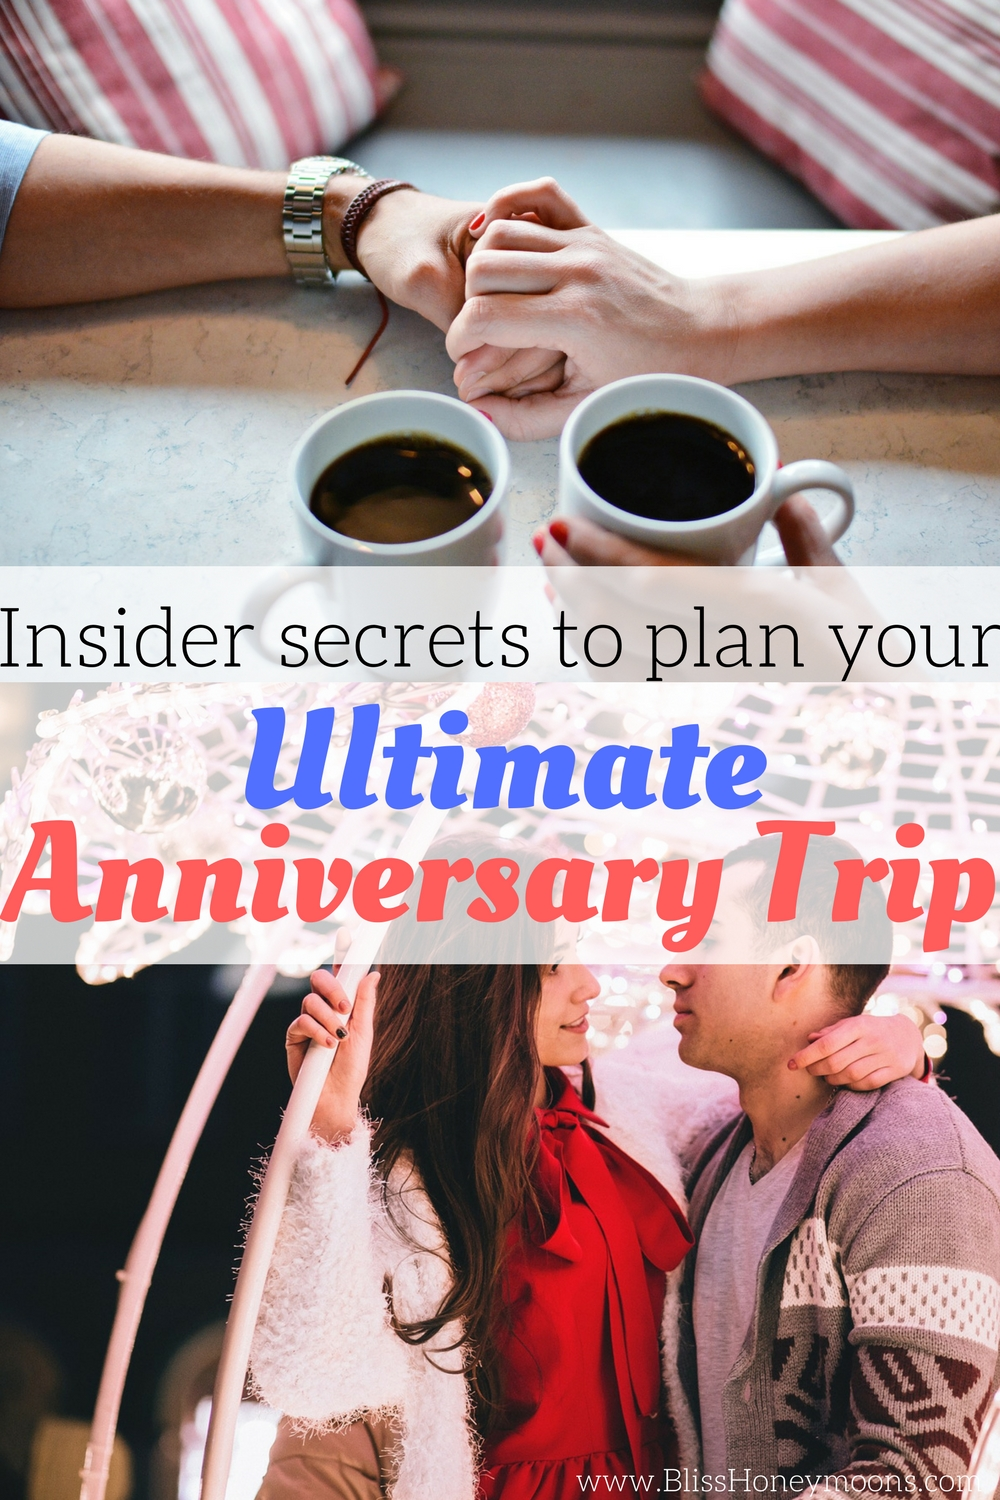 Island wedding blog bliss honeymoons for Where to go for anniversary trip